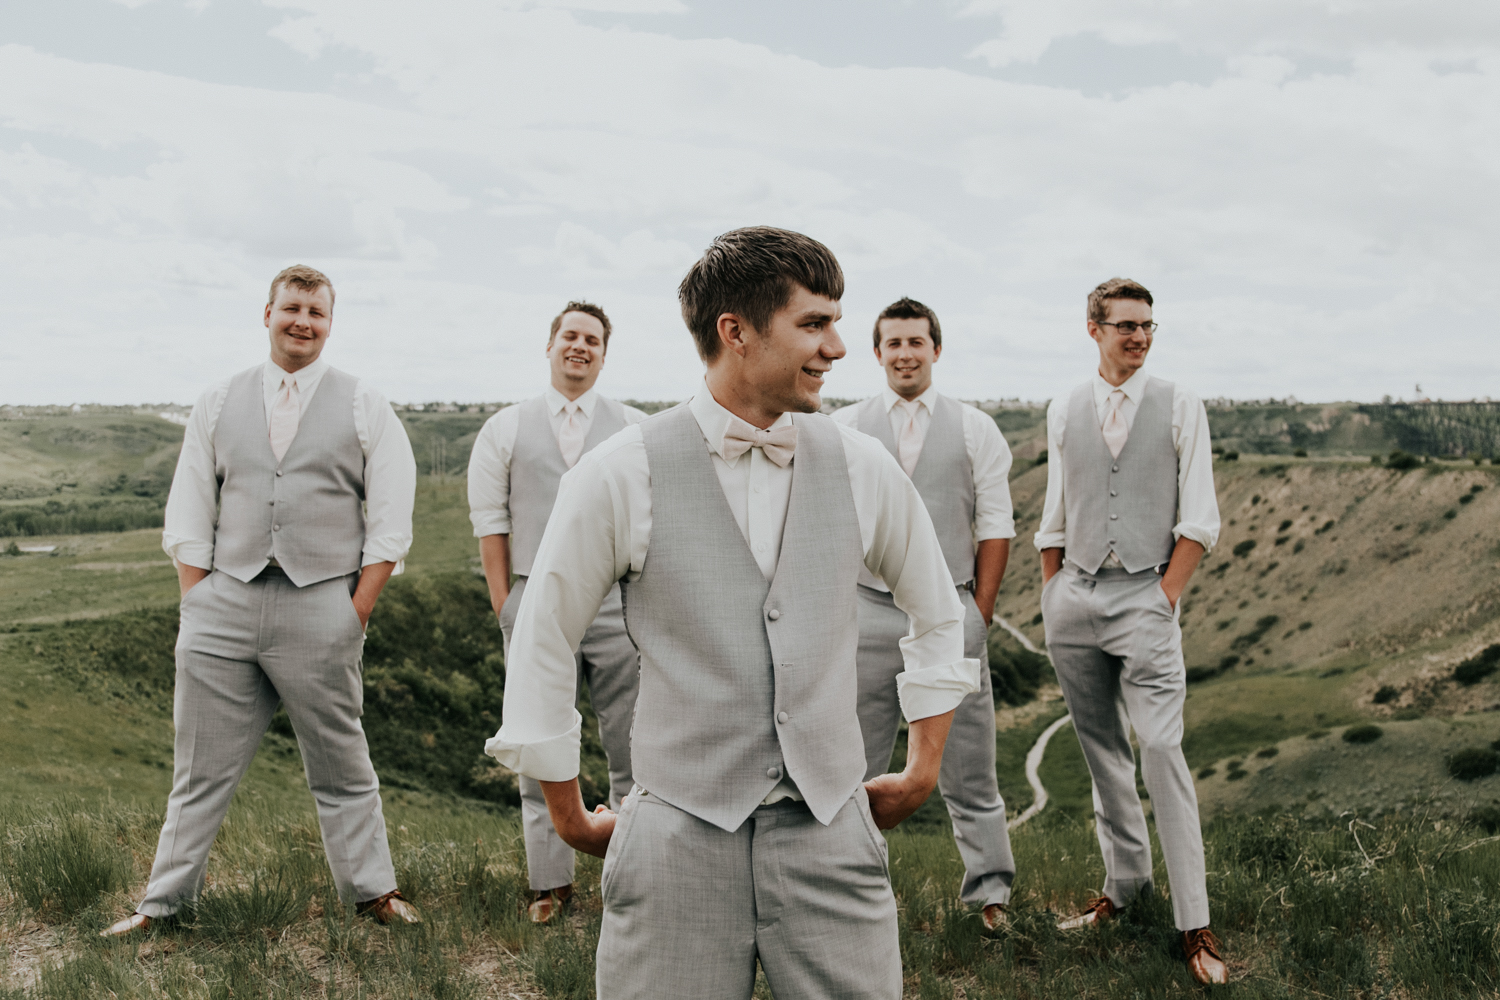 norland-estate-wedding-lethbridge-photography-love-and-be-loved-photographer-picture-image-photo-91.jpg